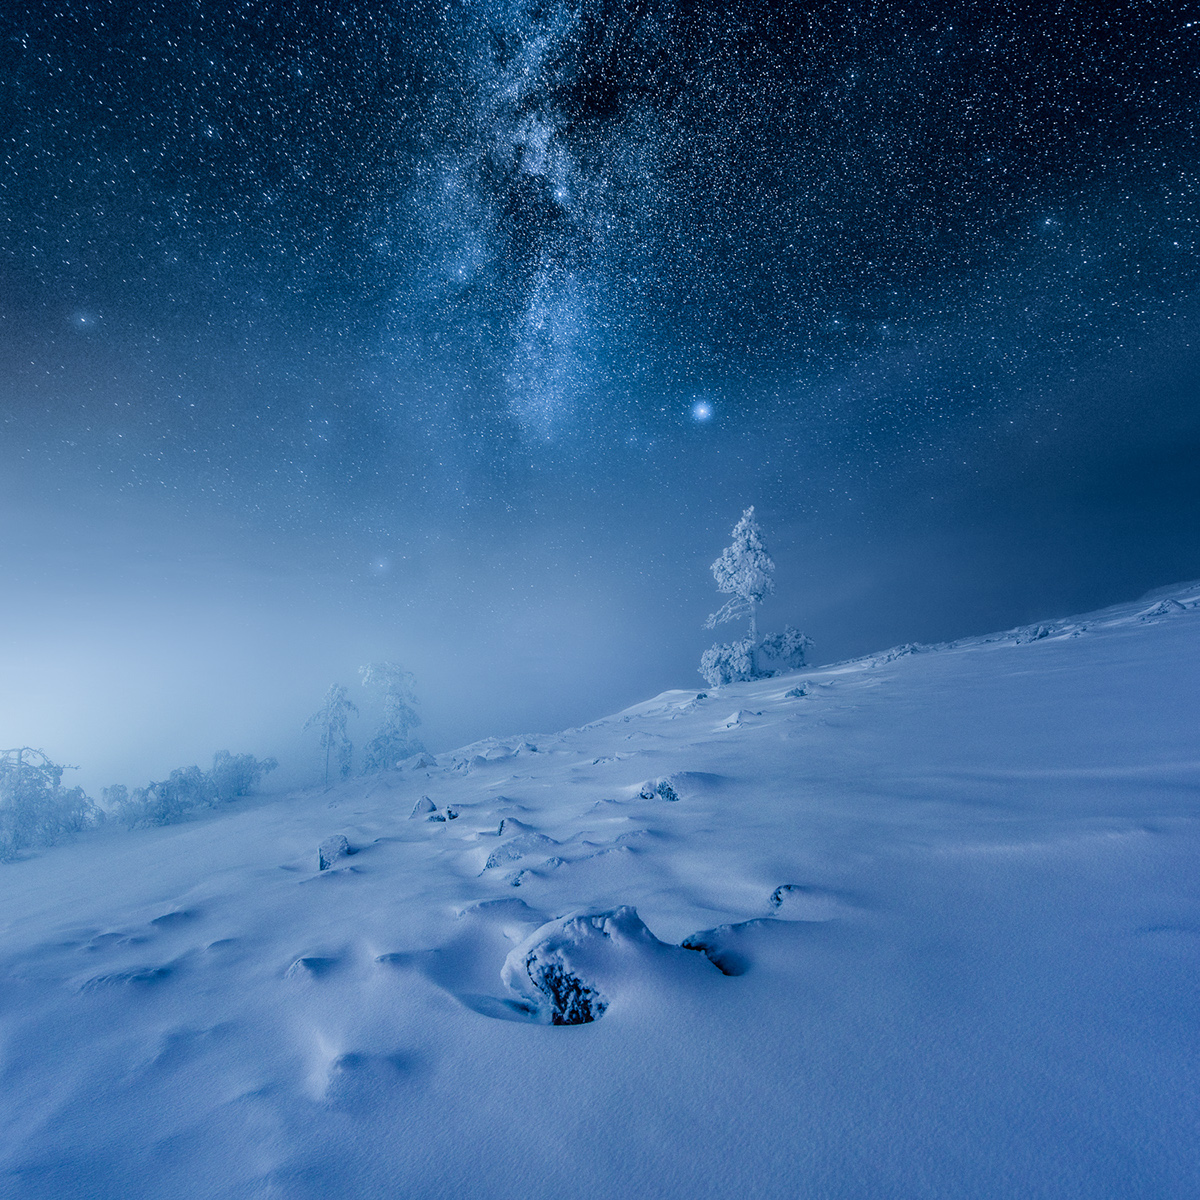 Mikko Lagerstedt - Invisible by day - 7